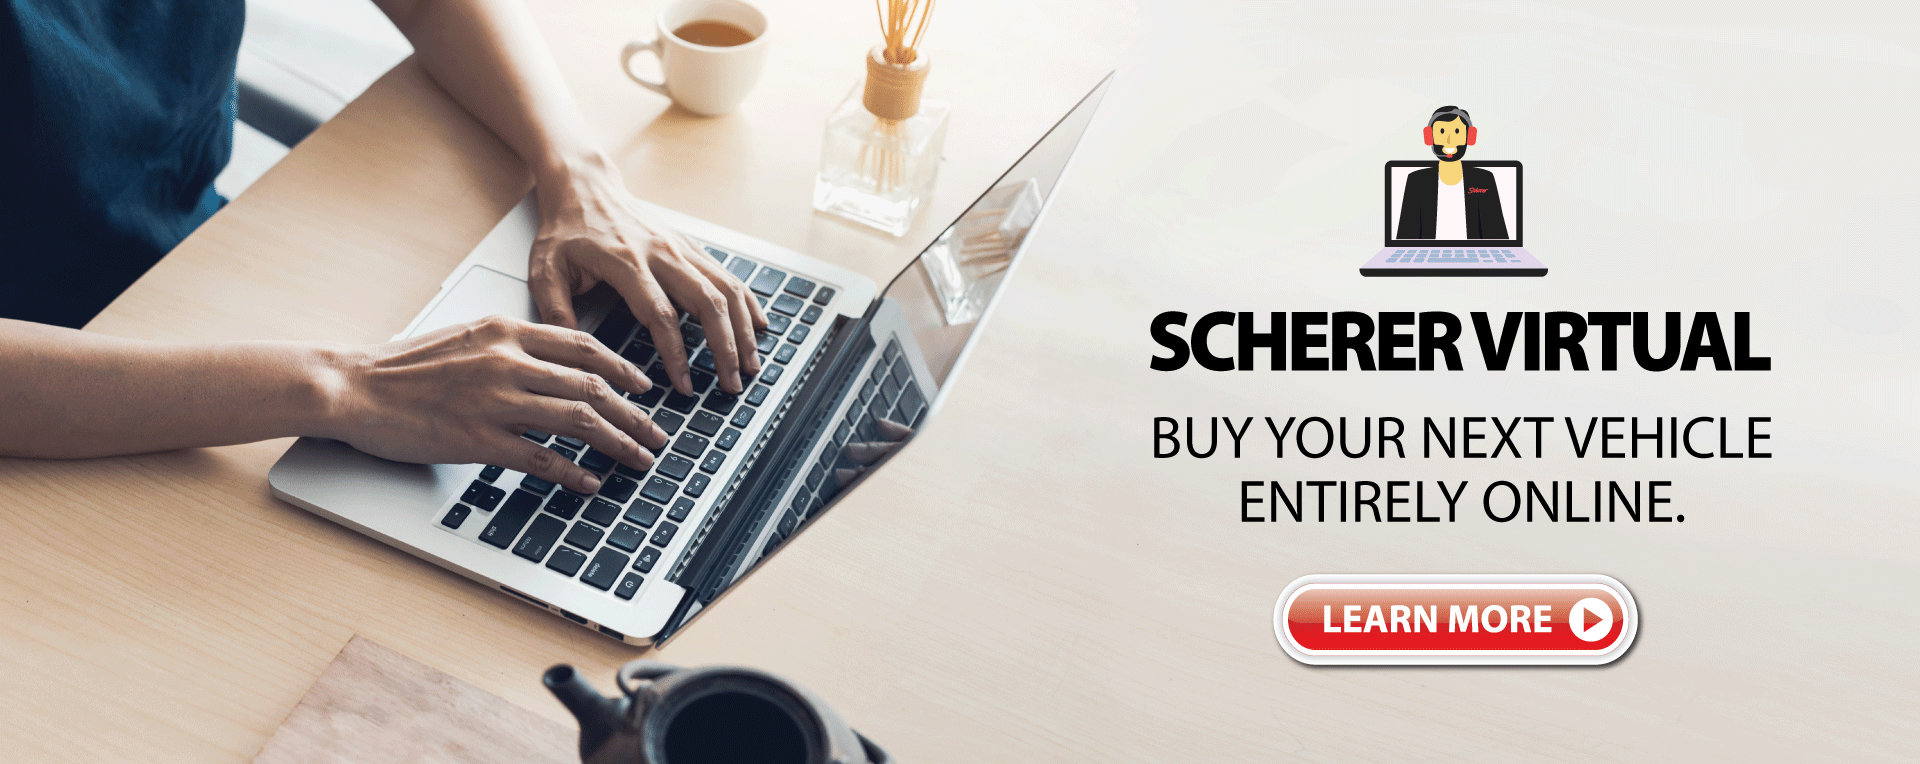 Scherer Virtual Sales - Buy your next vehicle online.